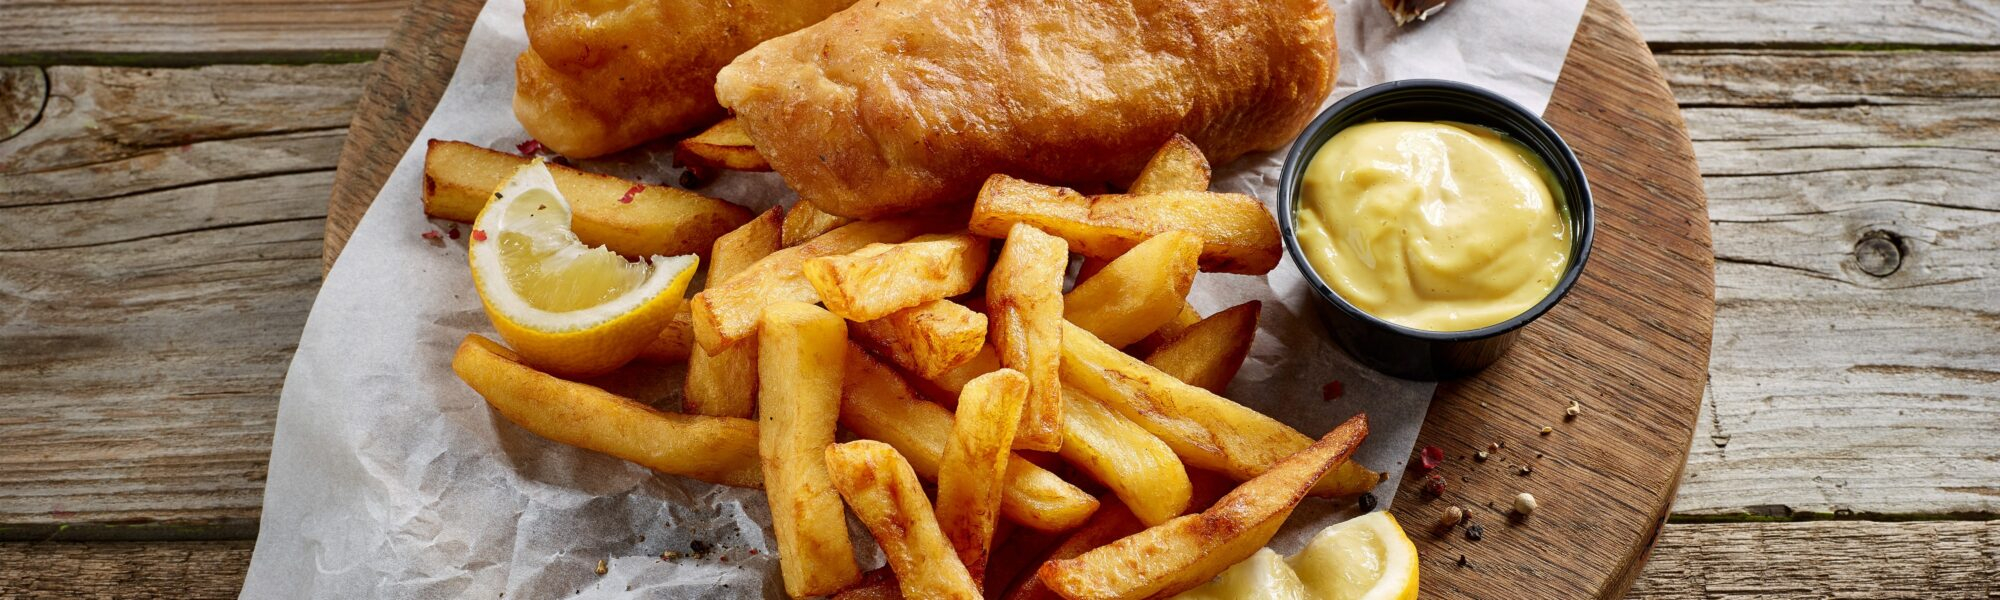 Un Fish and Chips - © magone